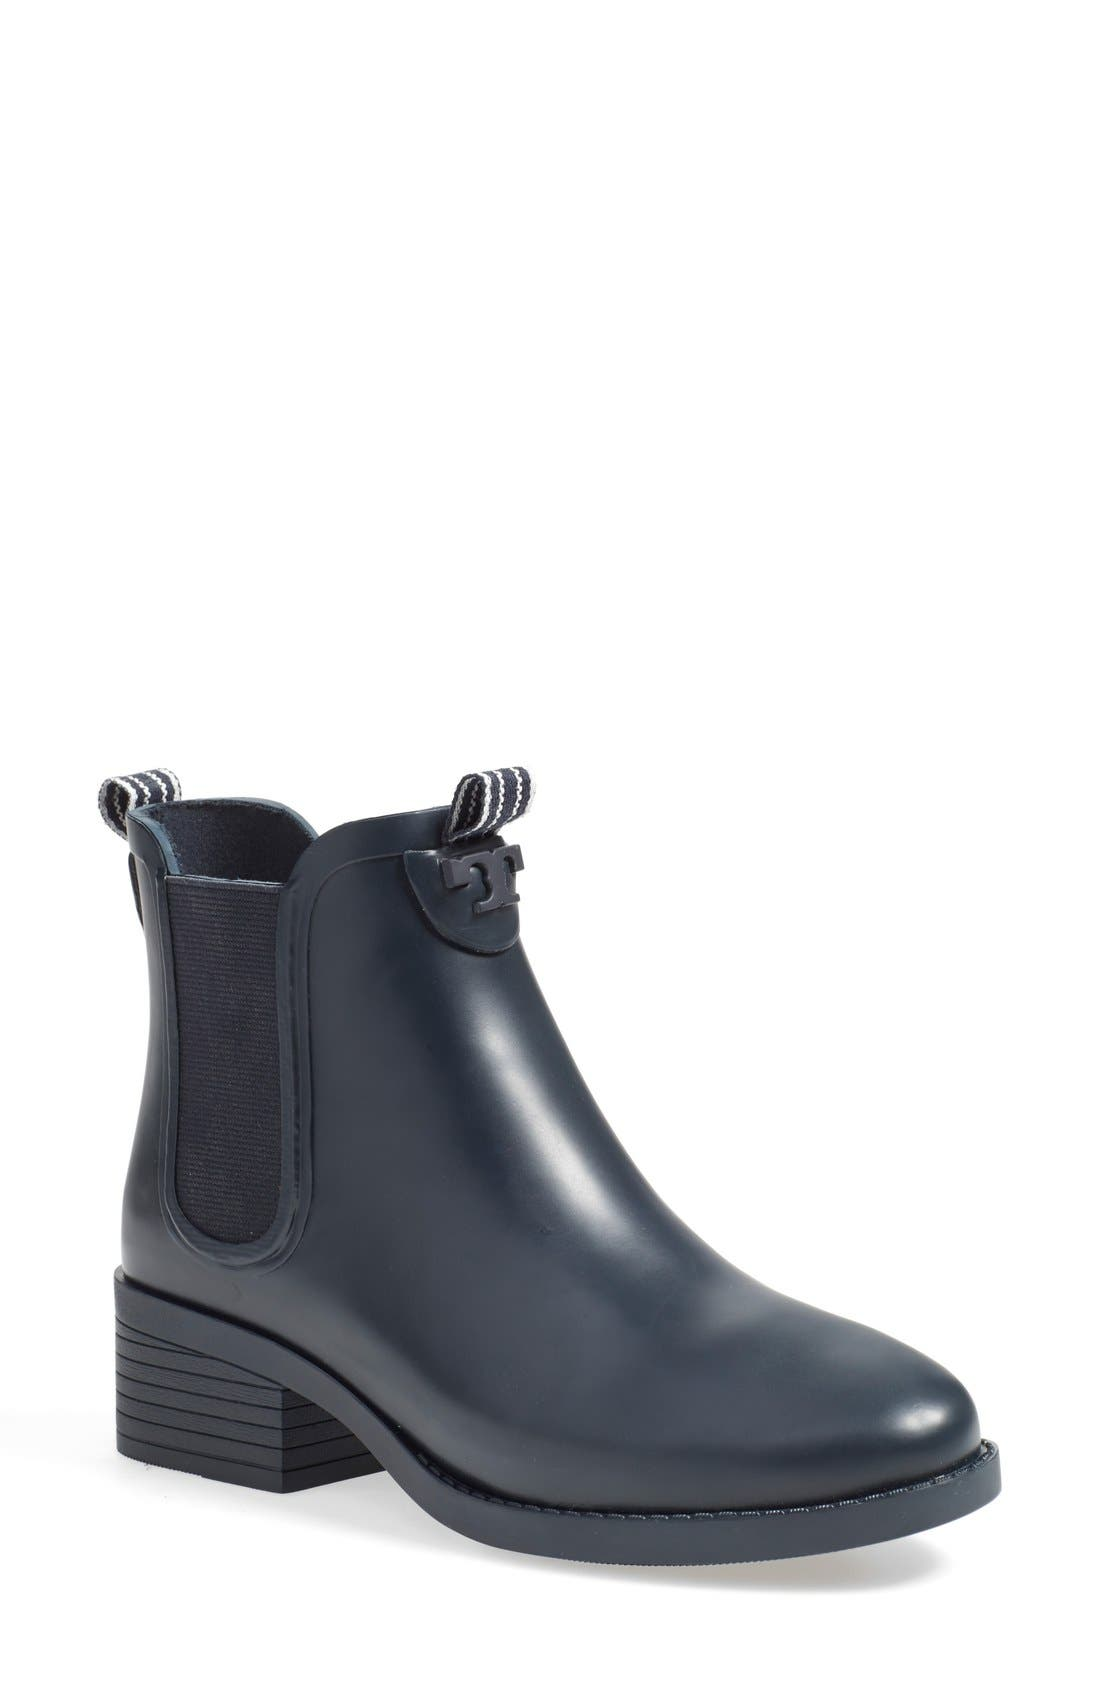 Alternate Image 1 Selected - Tory Burch Chelsea Rain Boot (Women)